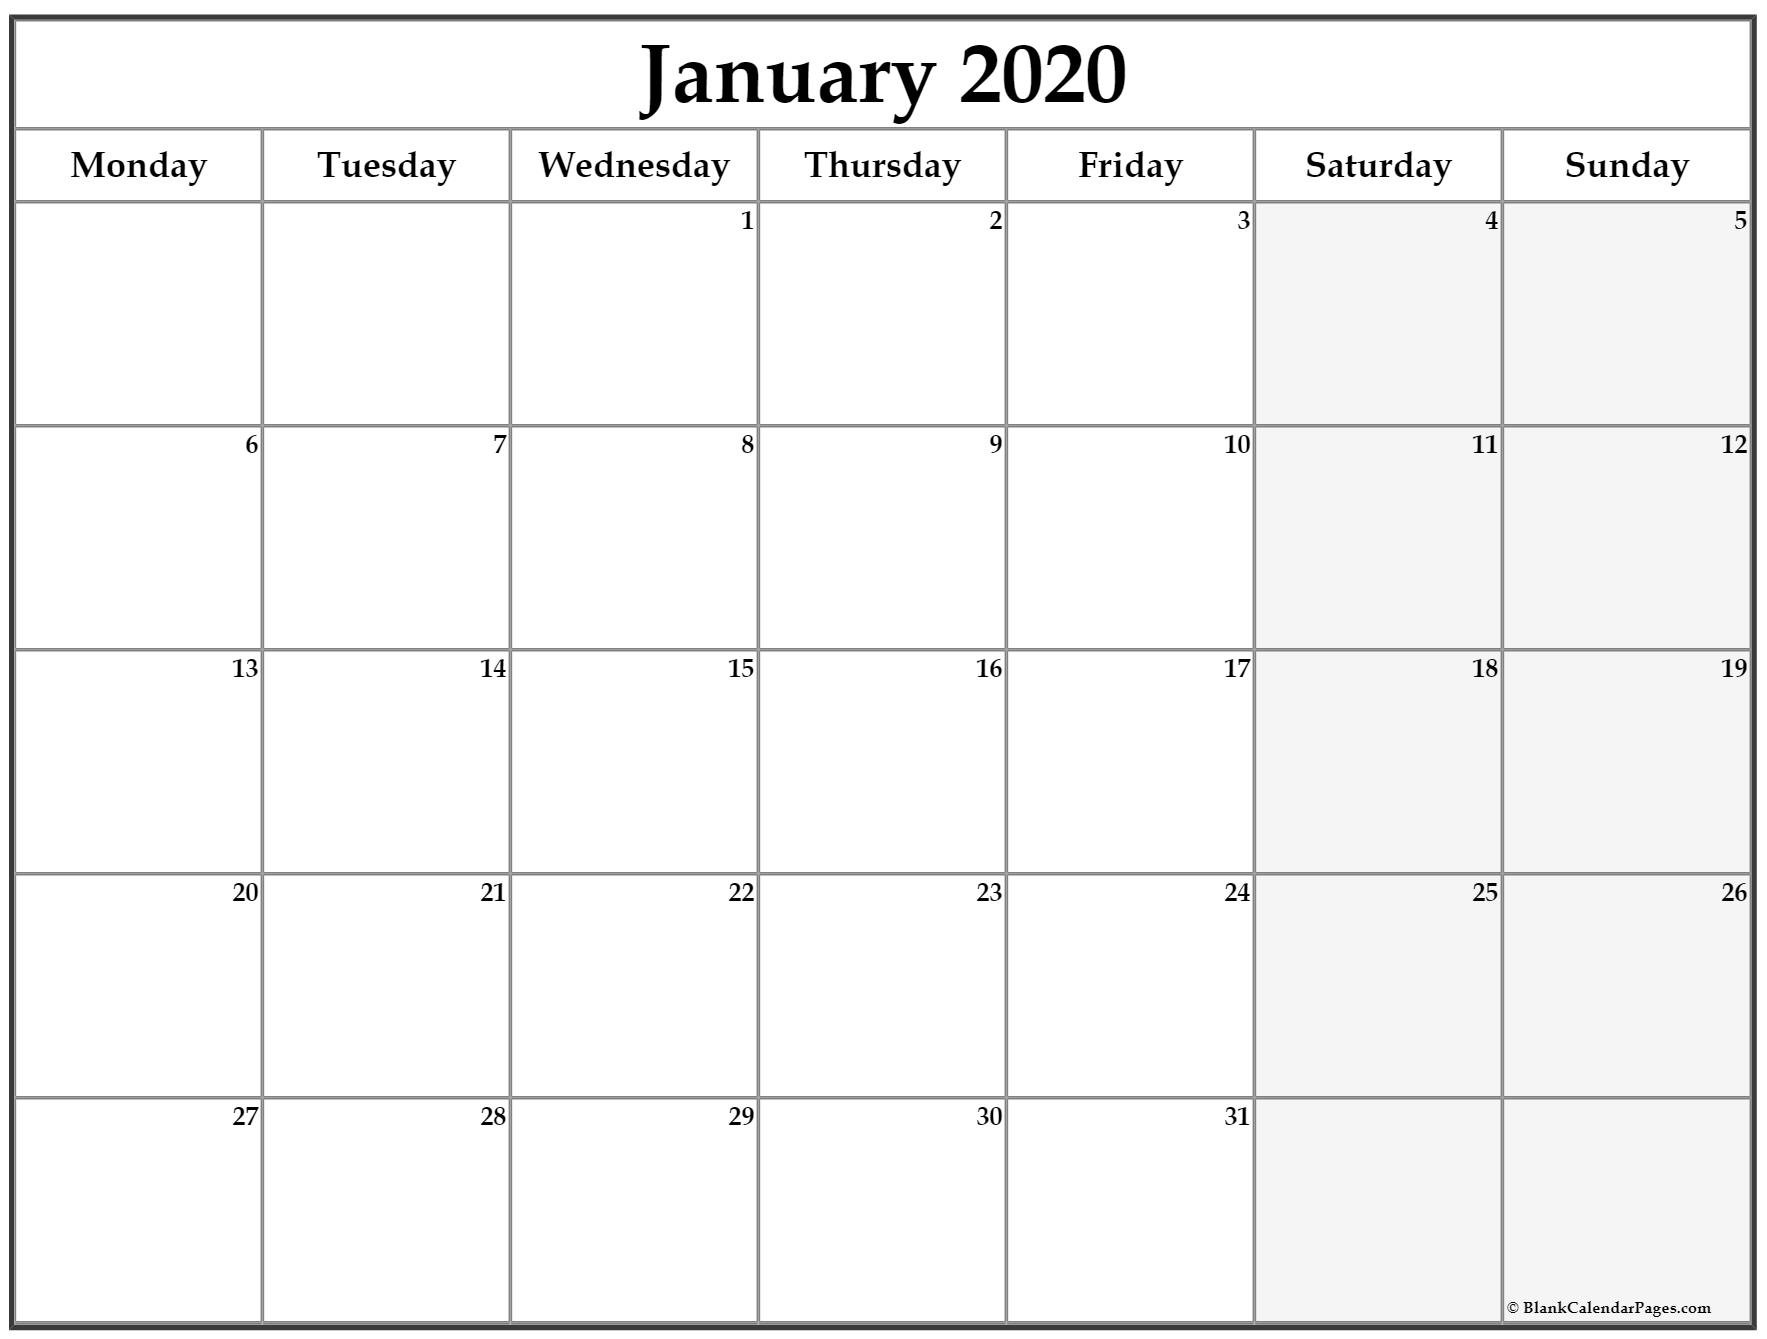 January 2020 Monday Calendar | Monday To Sunday Free Printable Monday Thru Sunday Calendars